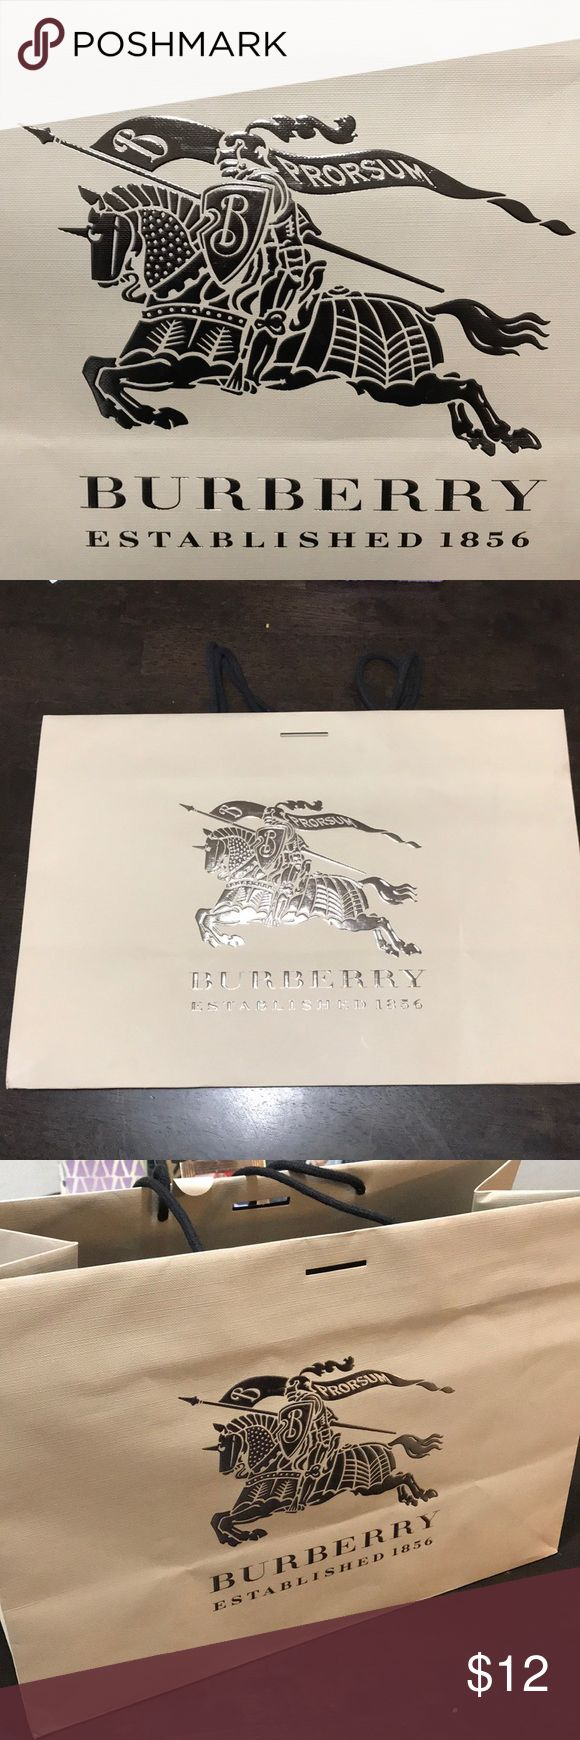 Burberry shopping bag Burberry shopping bag. Ribbon not included- bag has a few crinkles to it. It's from the flagship store in London   Bundle 3+ items for an automatic 15% discount Burberry Bags